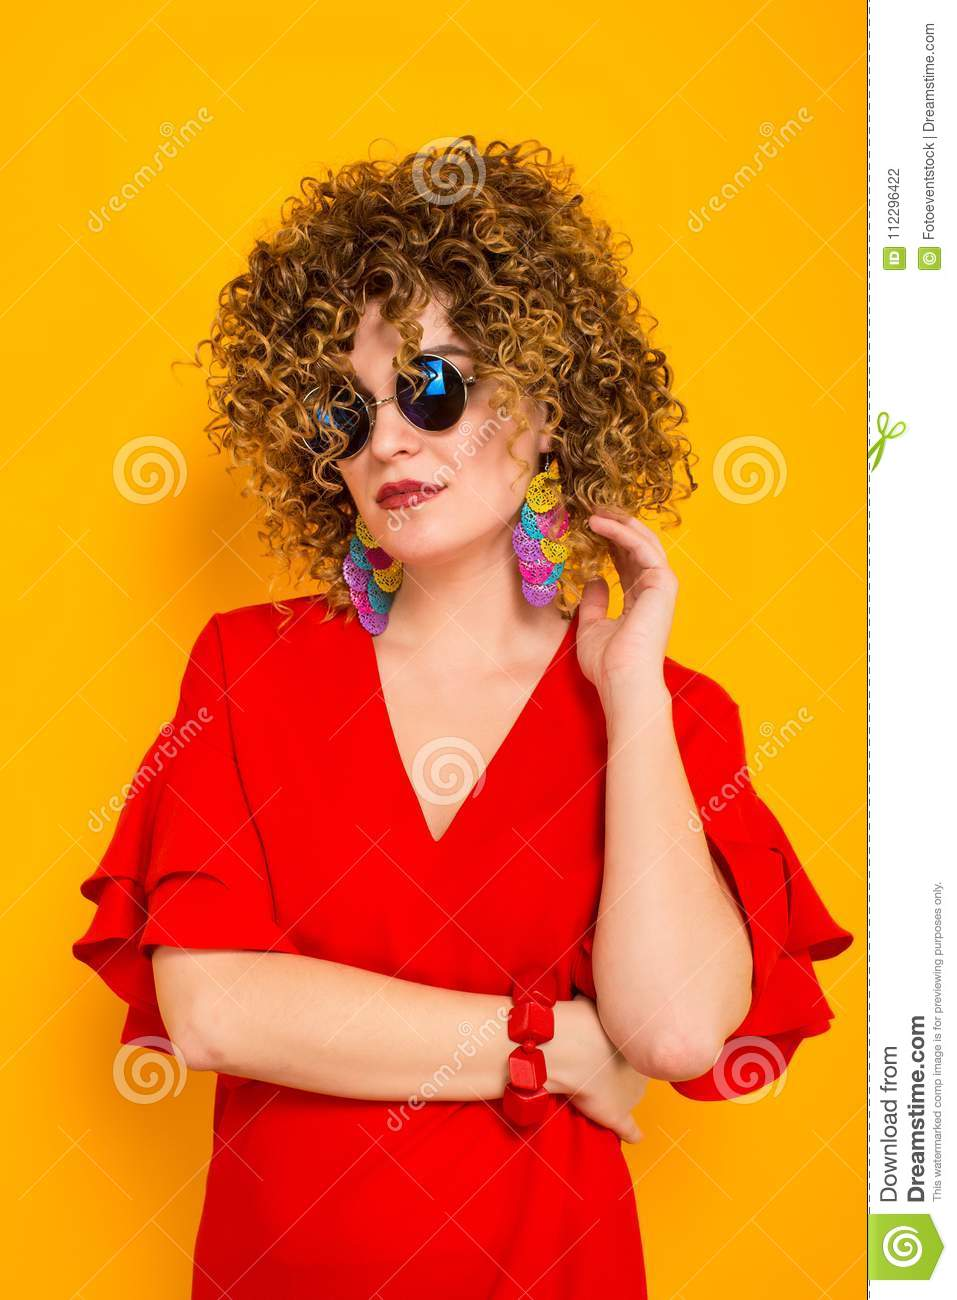 Attractive Woman With Short Curly Hair Stock Photo Image